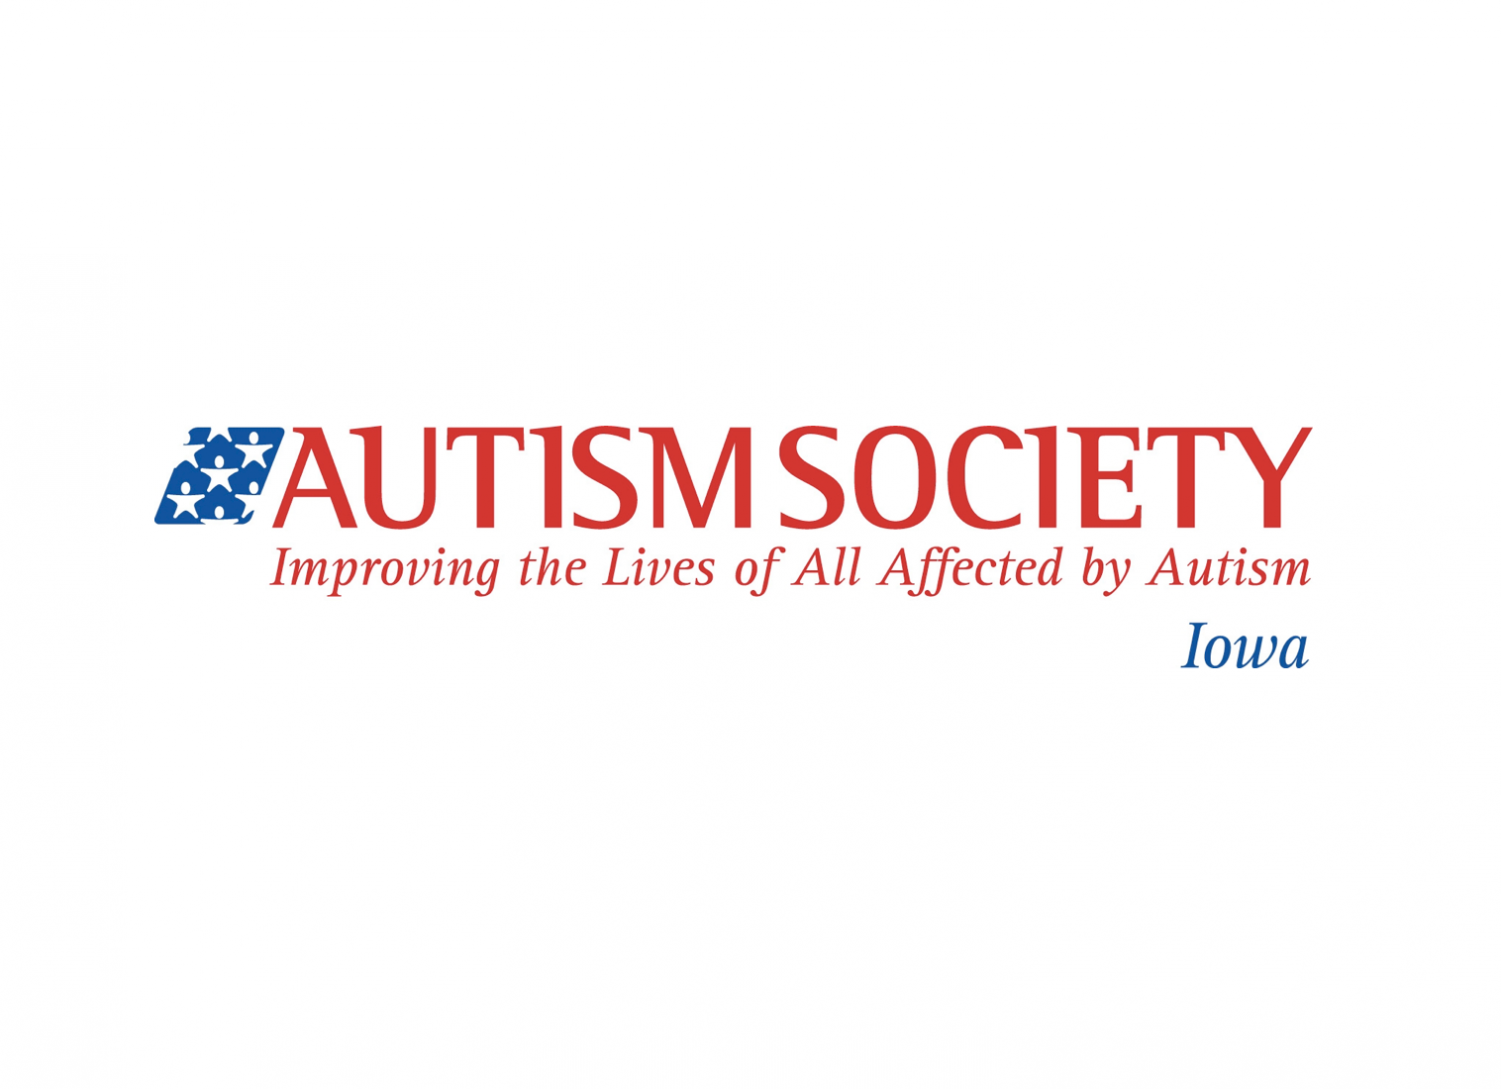 Logo provided by the Autism Society of Iowa.